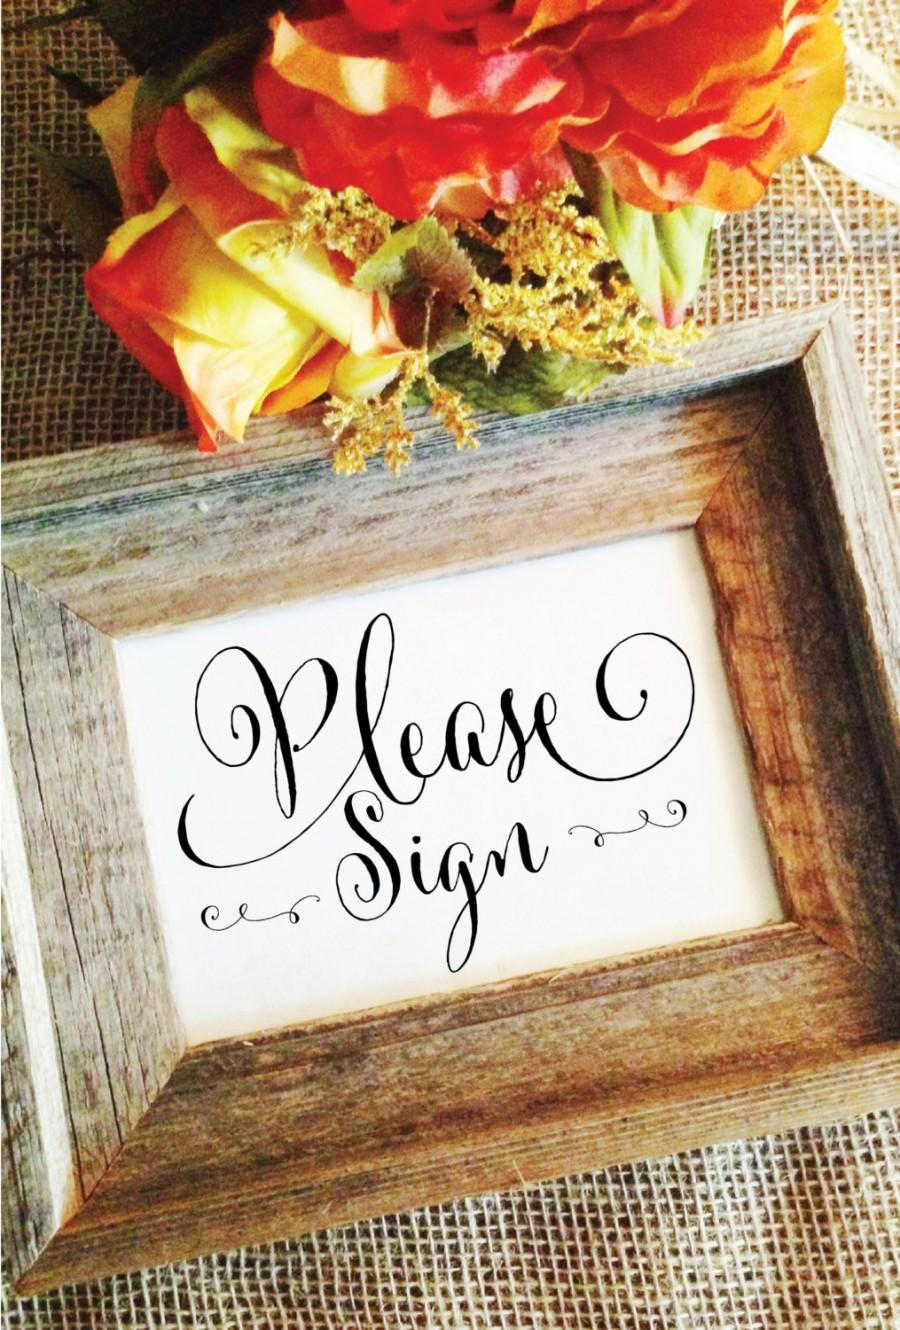 Hochzeit - please sign wedding sign wedding decor (Frame NOT included)